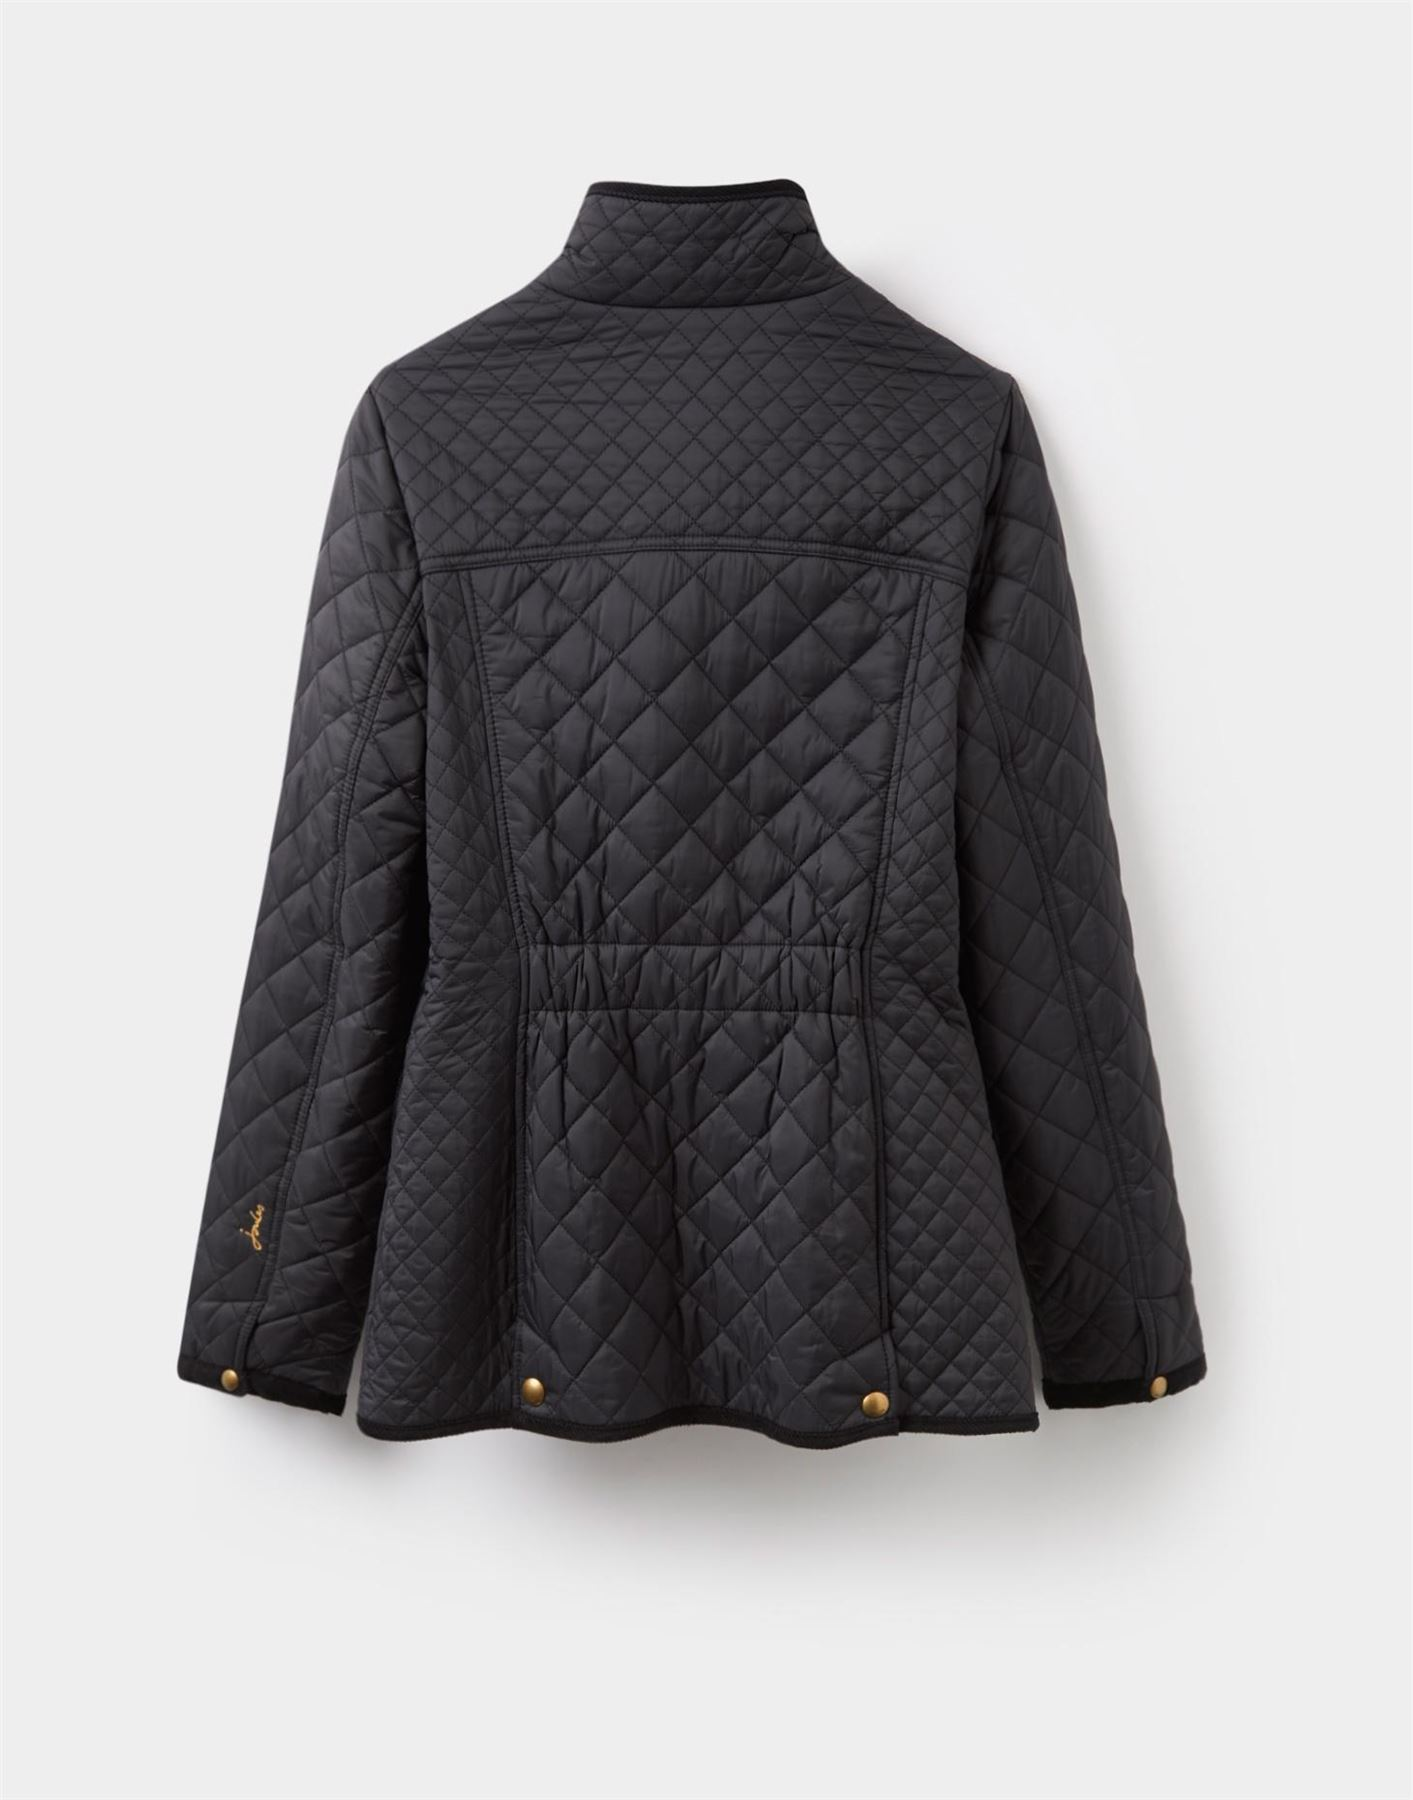 Joules Newdale Equestrian Womens Warm Country Fashion